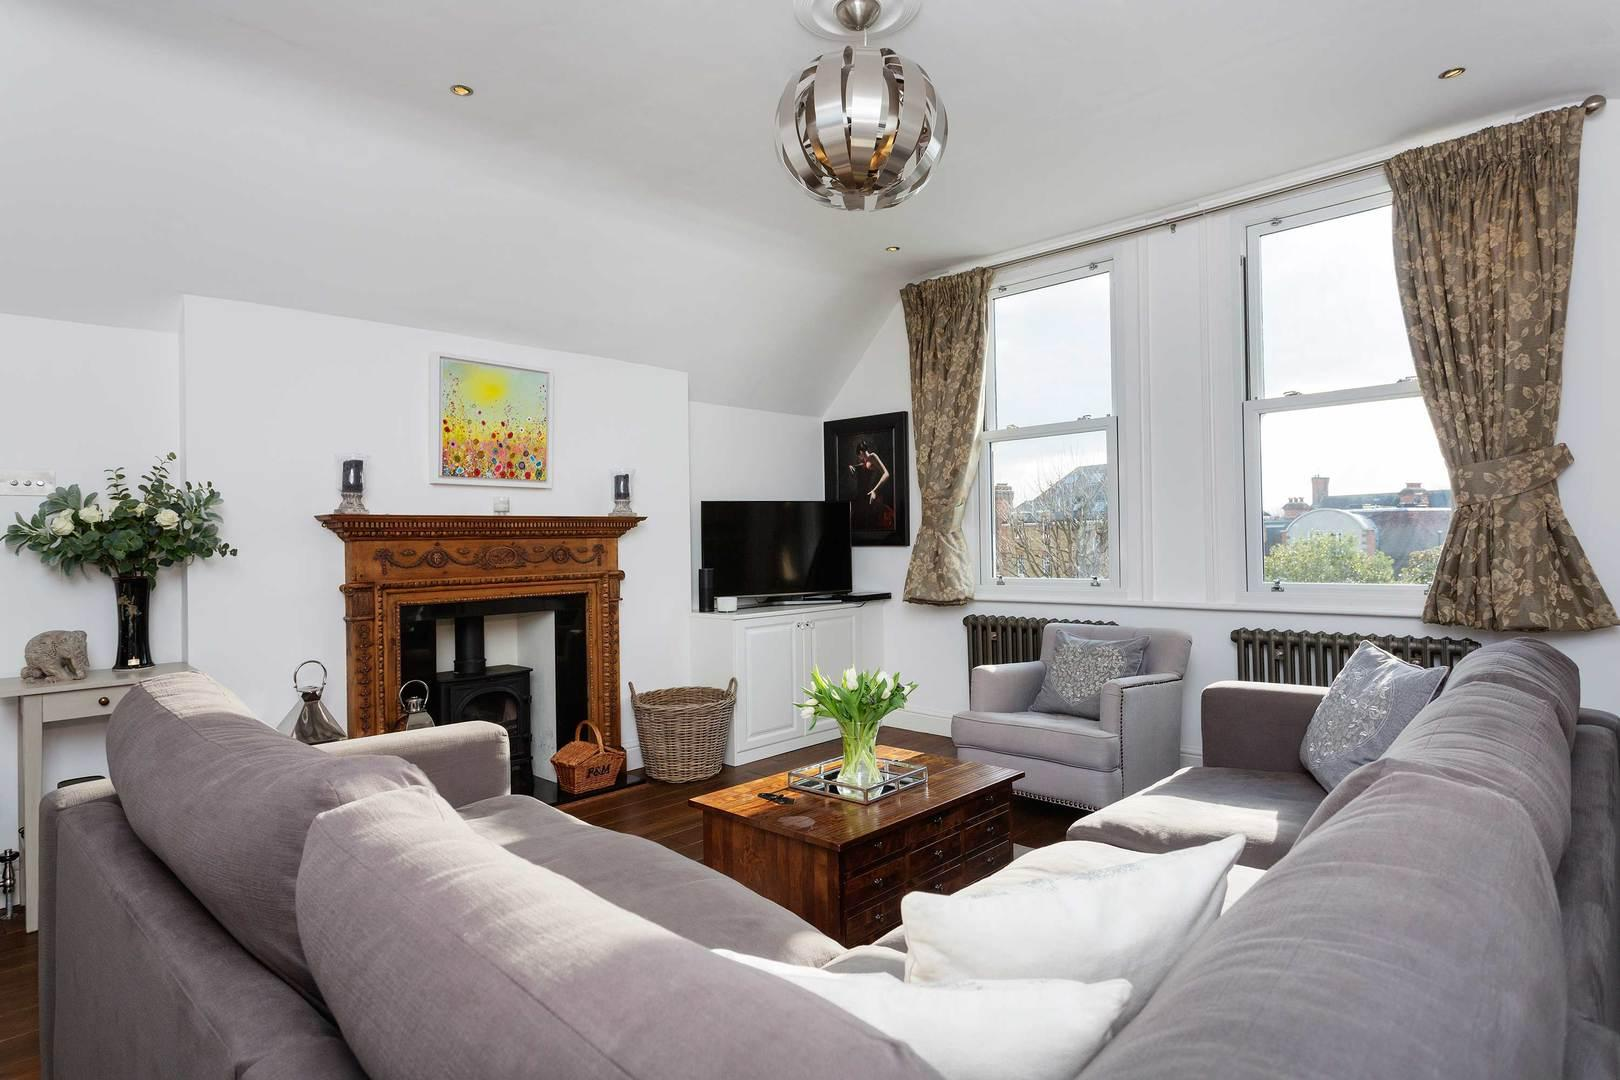 Property Image 2 - Charming Apartment in Desirable Wimbledon Location